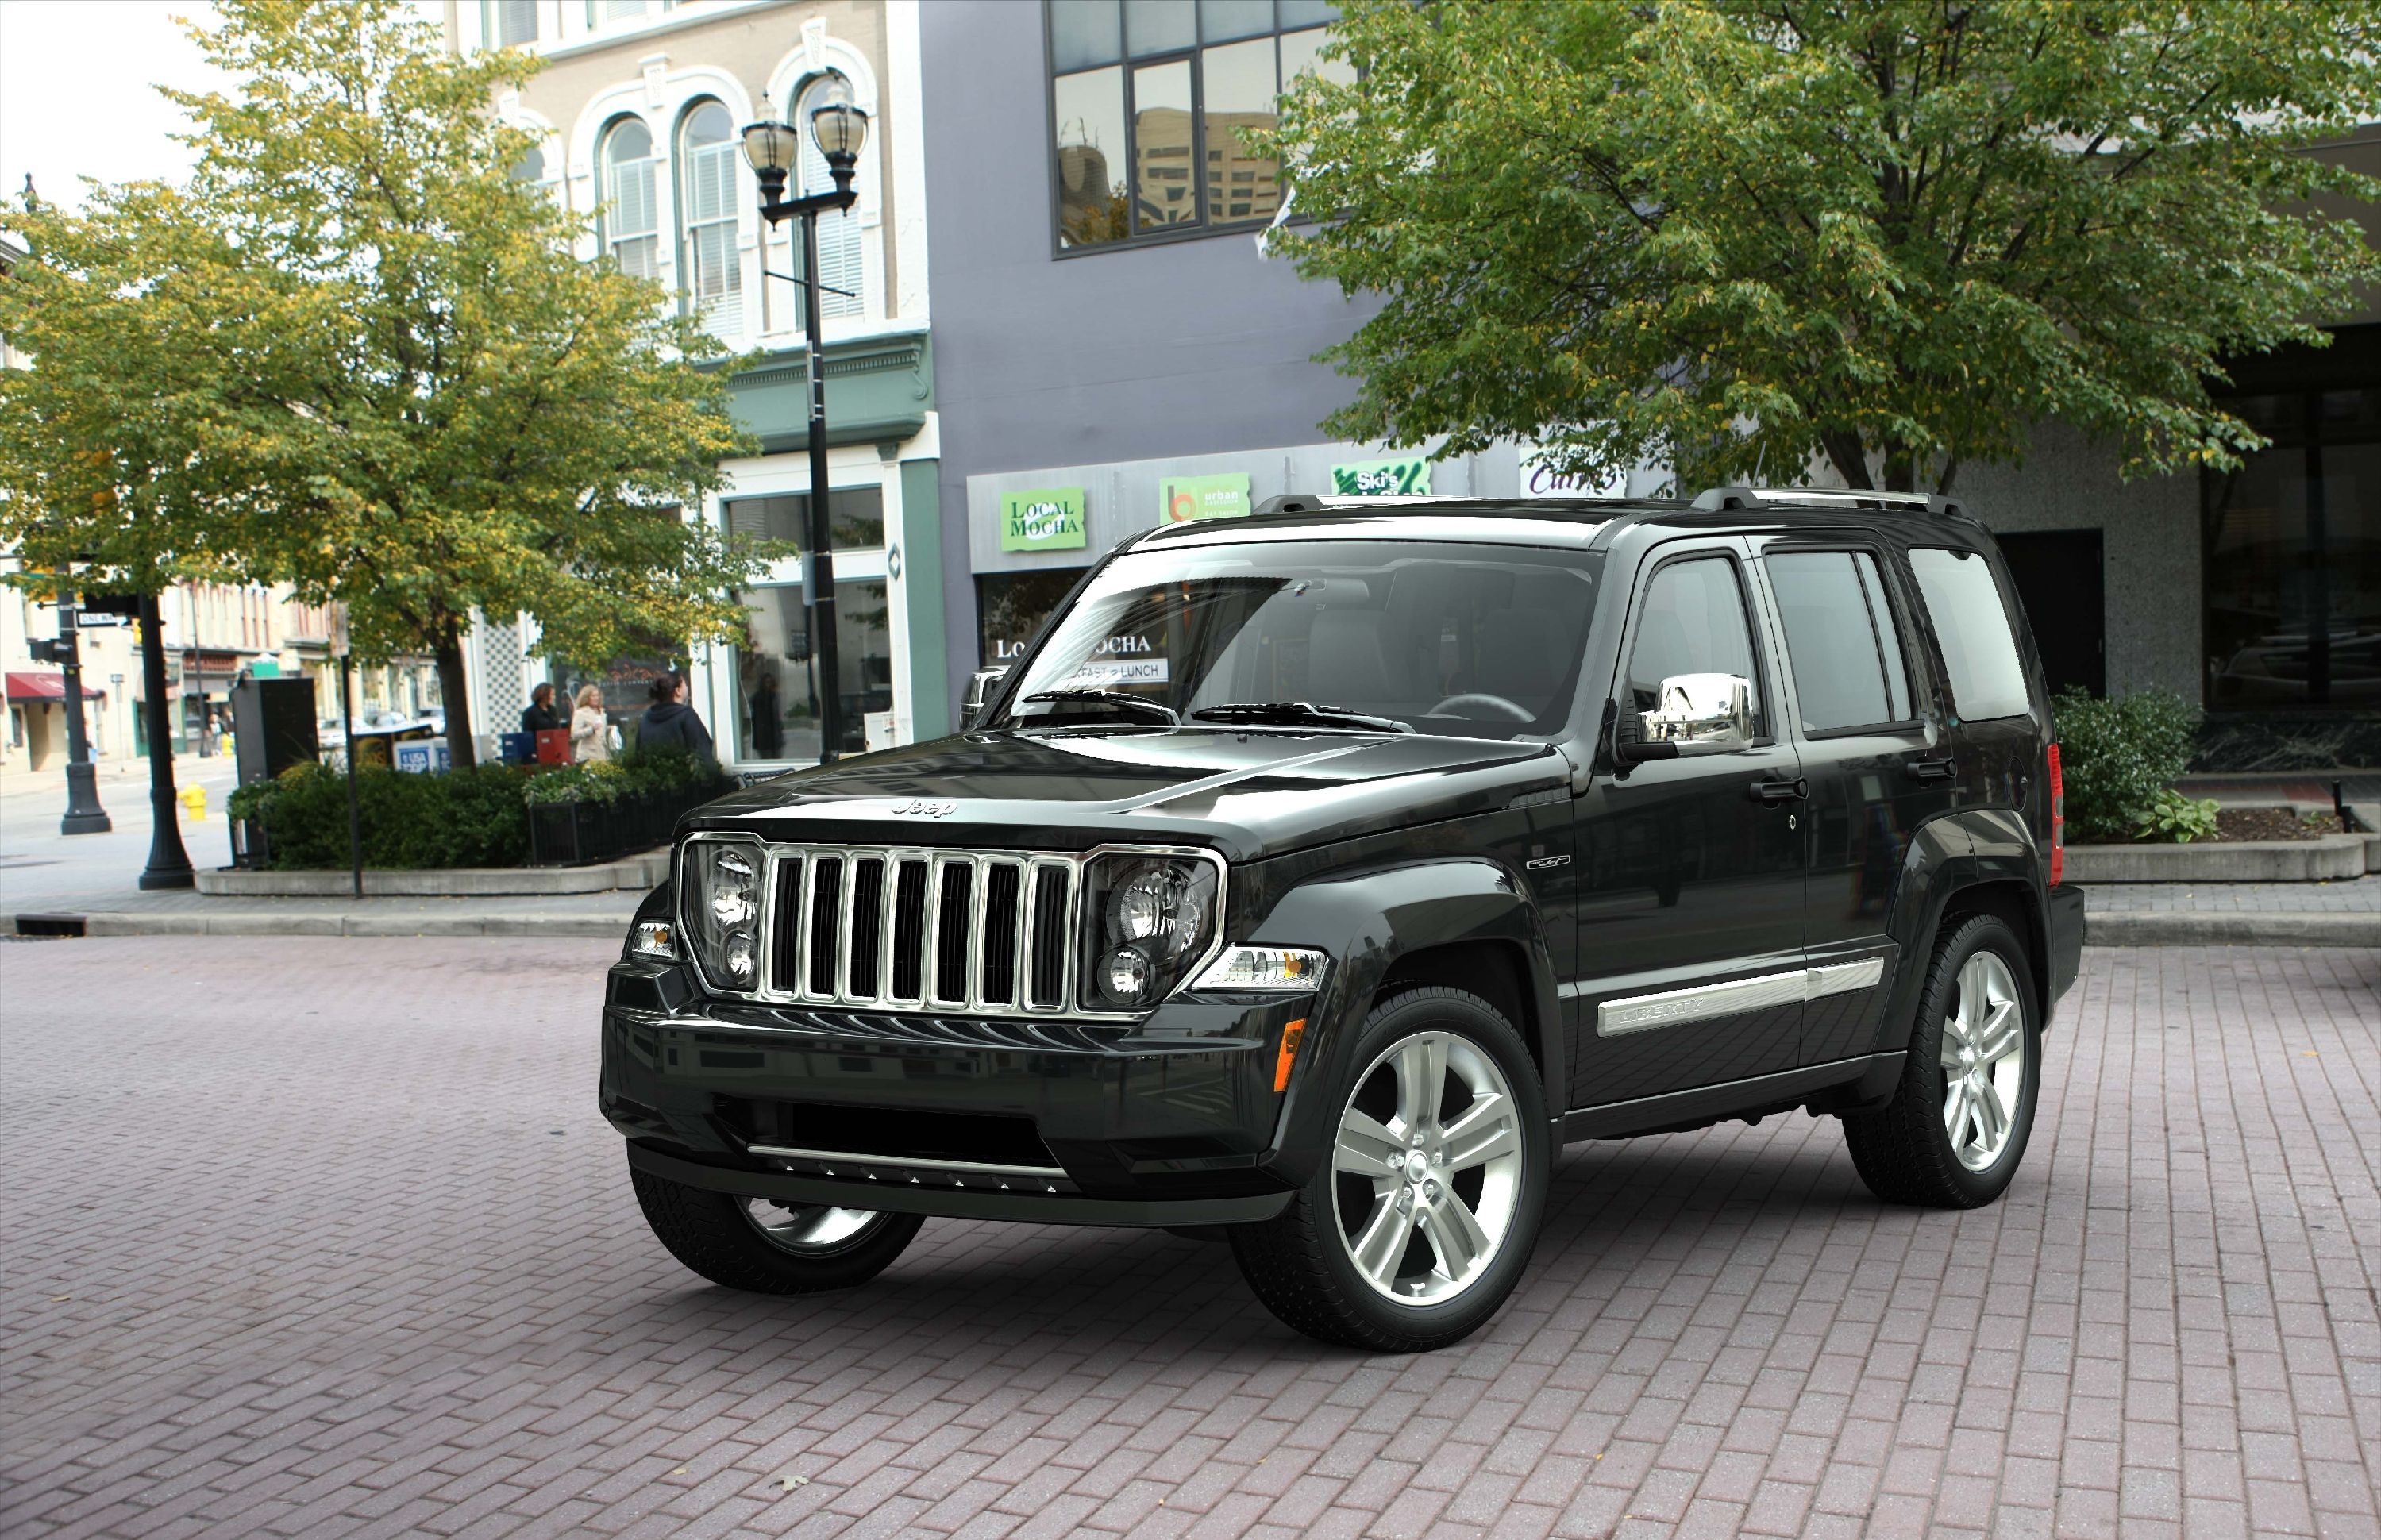 Jeep Liberty JET MY NEW RIDE Rides